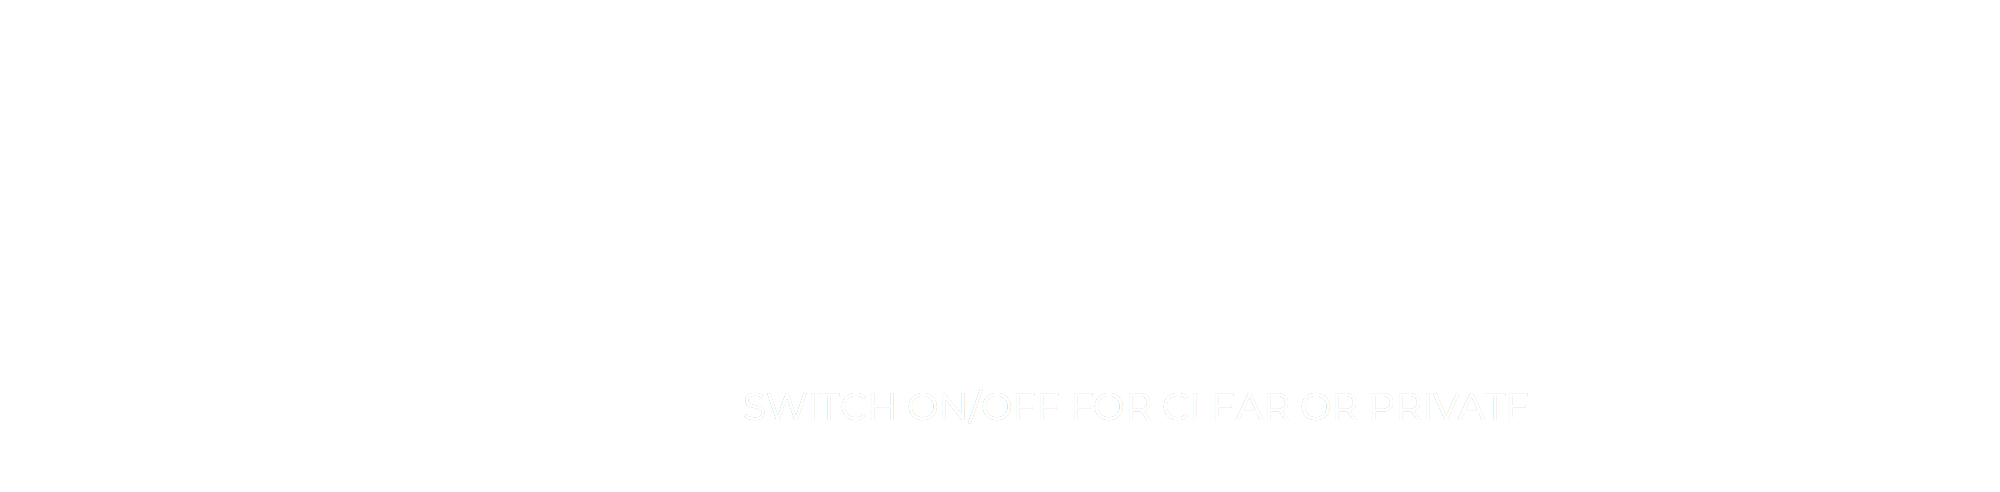 SWITCHABLE SMART WINDOW FILM-logo-white.png